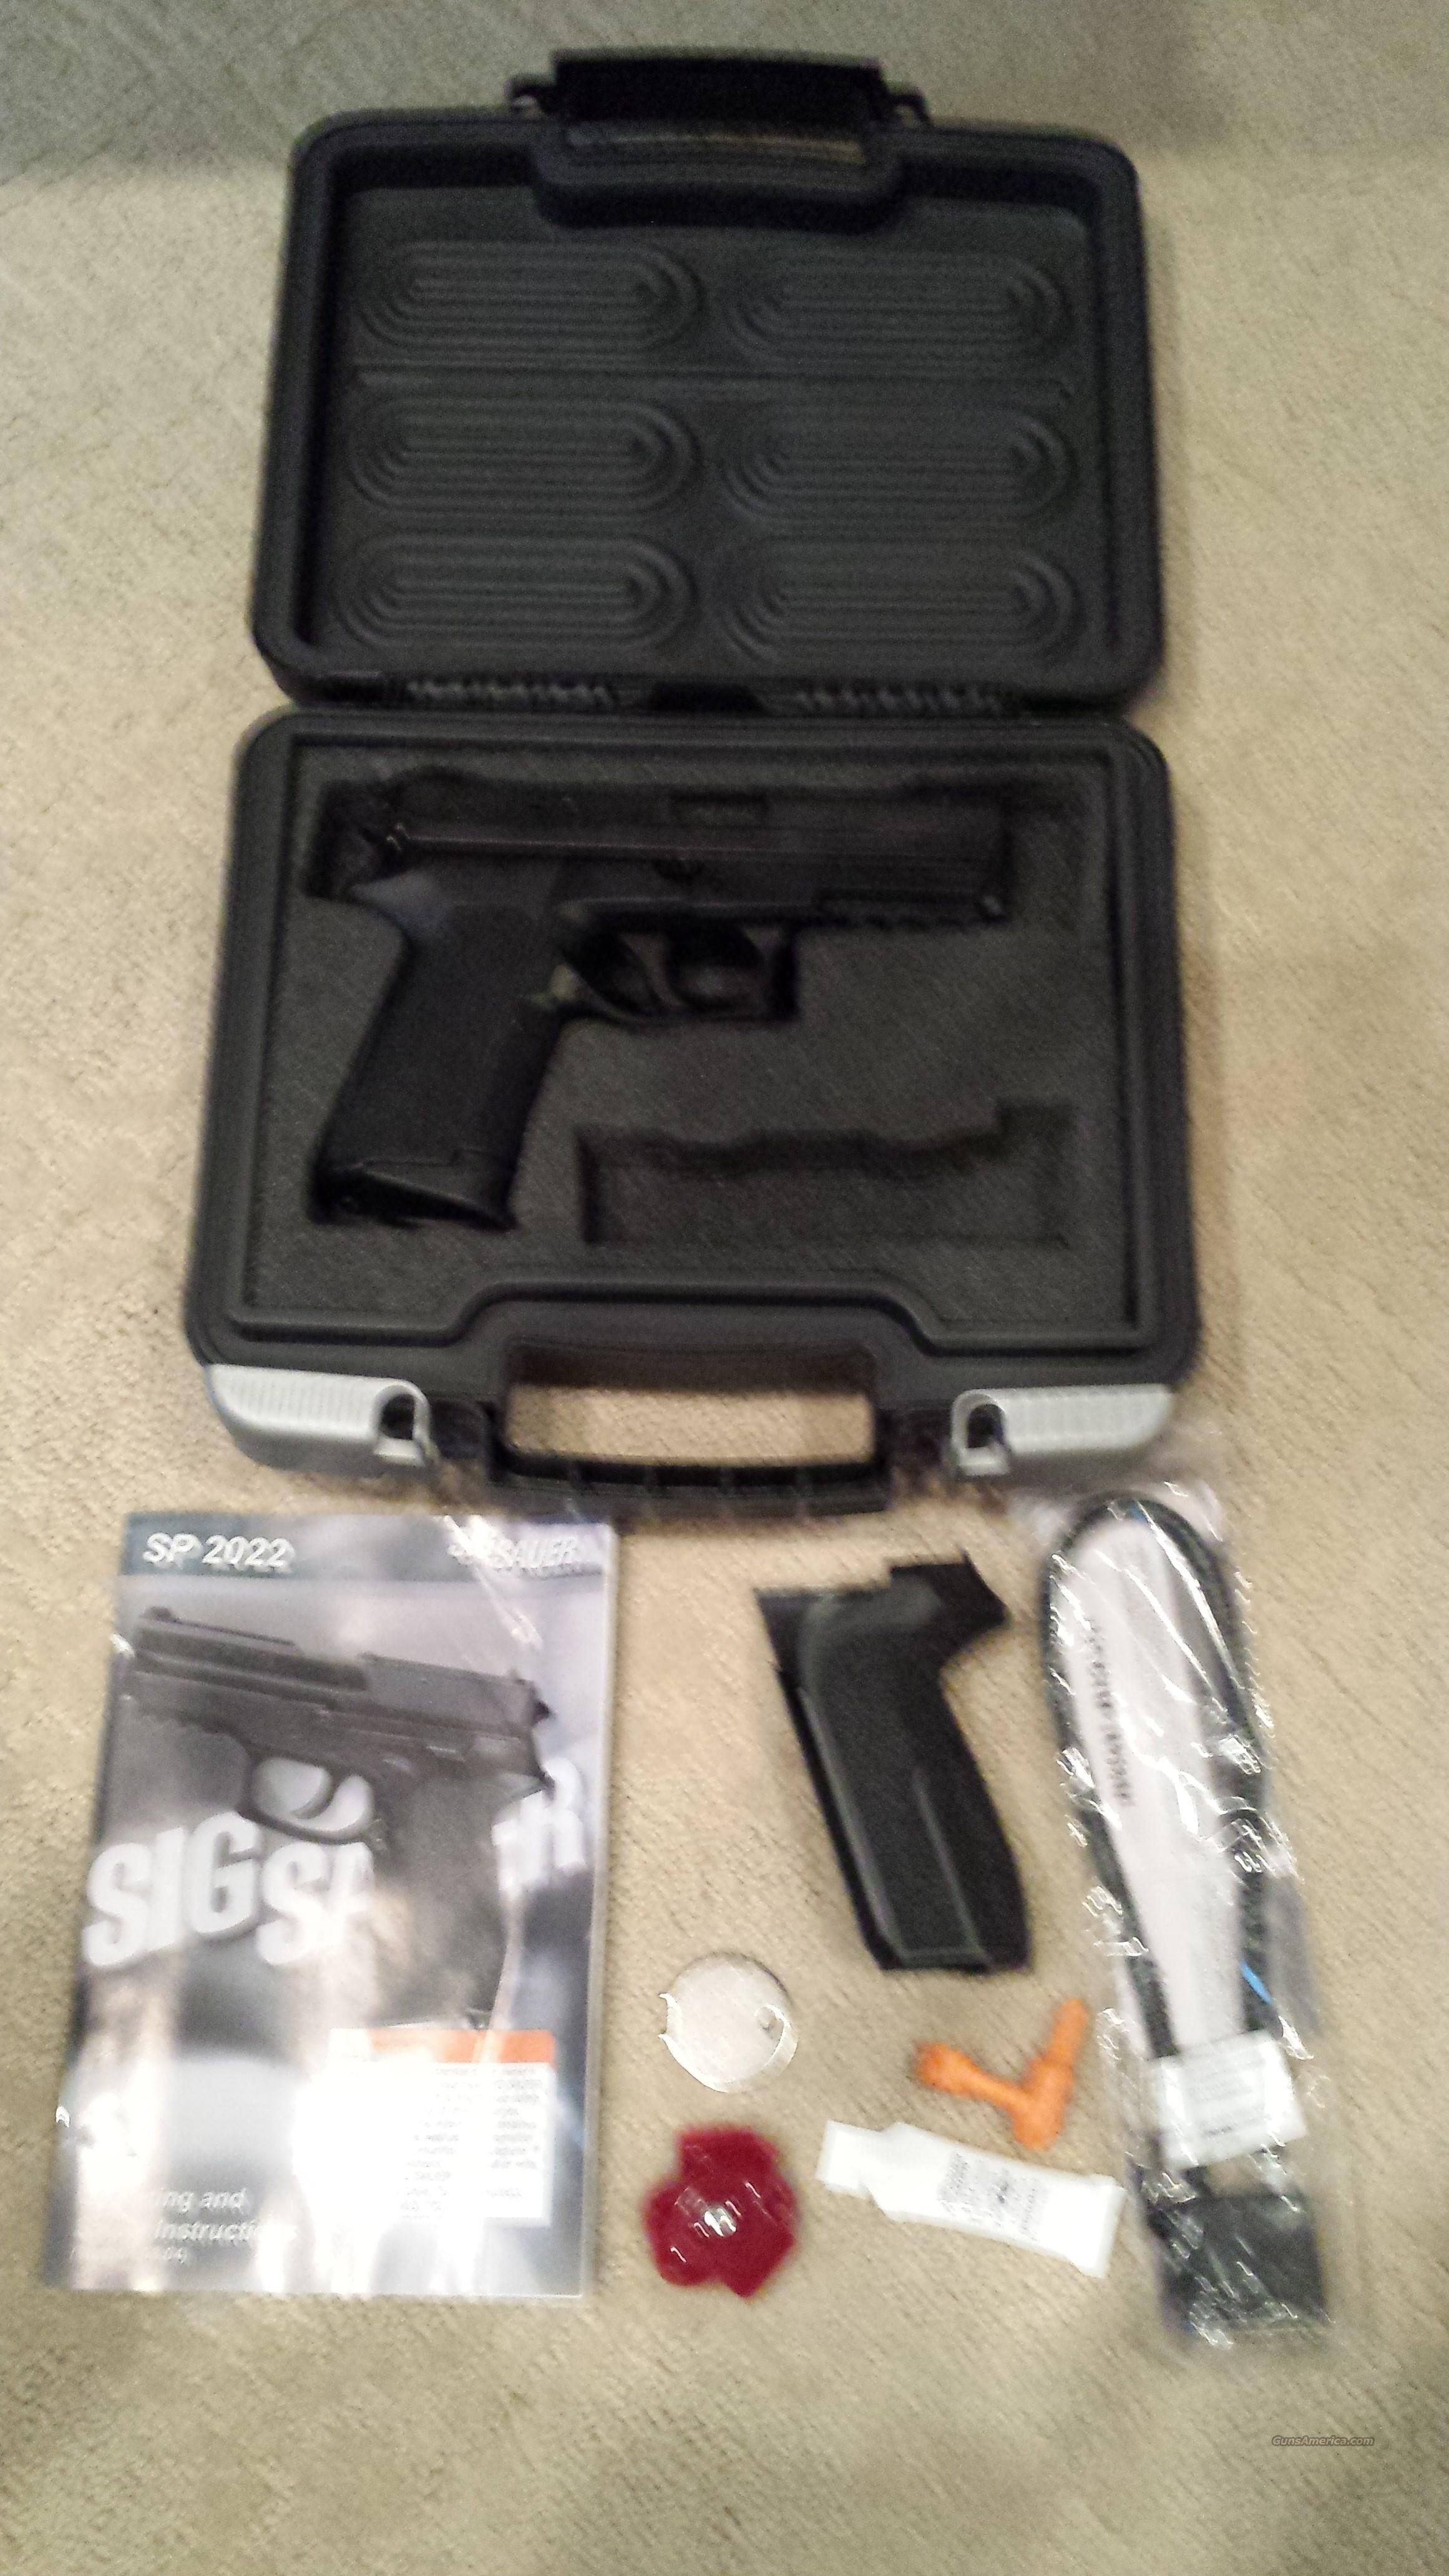 SIG Sauer SP2022 GREAT CONDITION!!  Guns > Pistols > Sig - Sauer/Sigarms Pistols > 2022